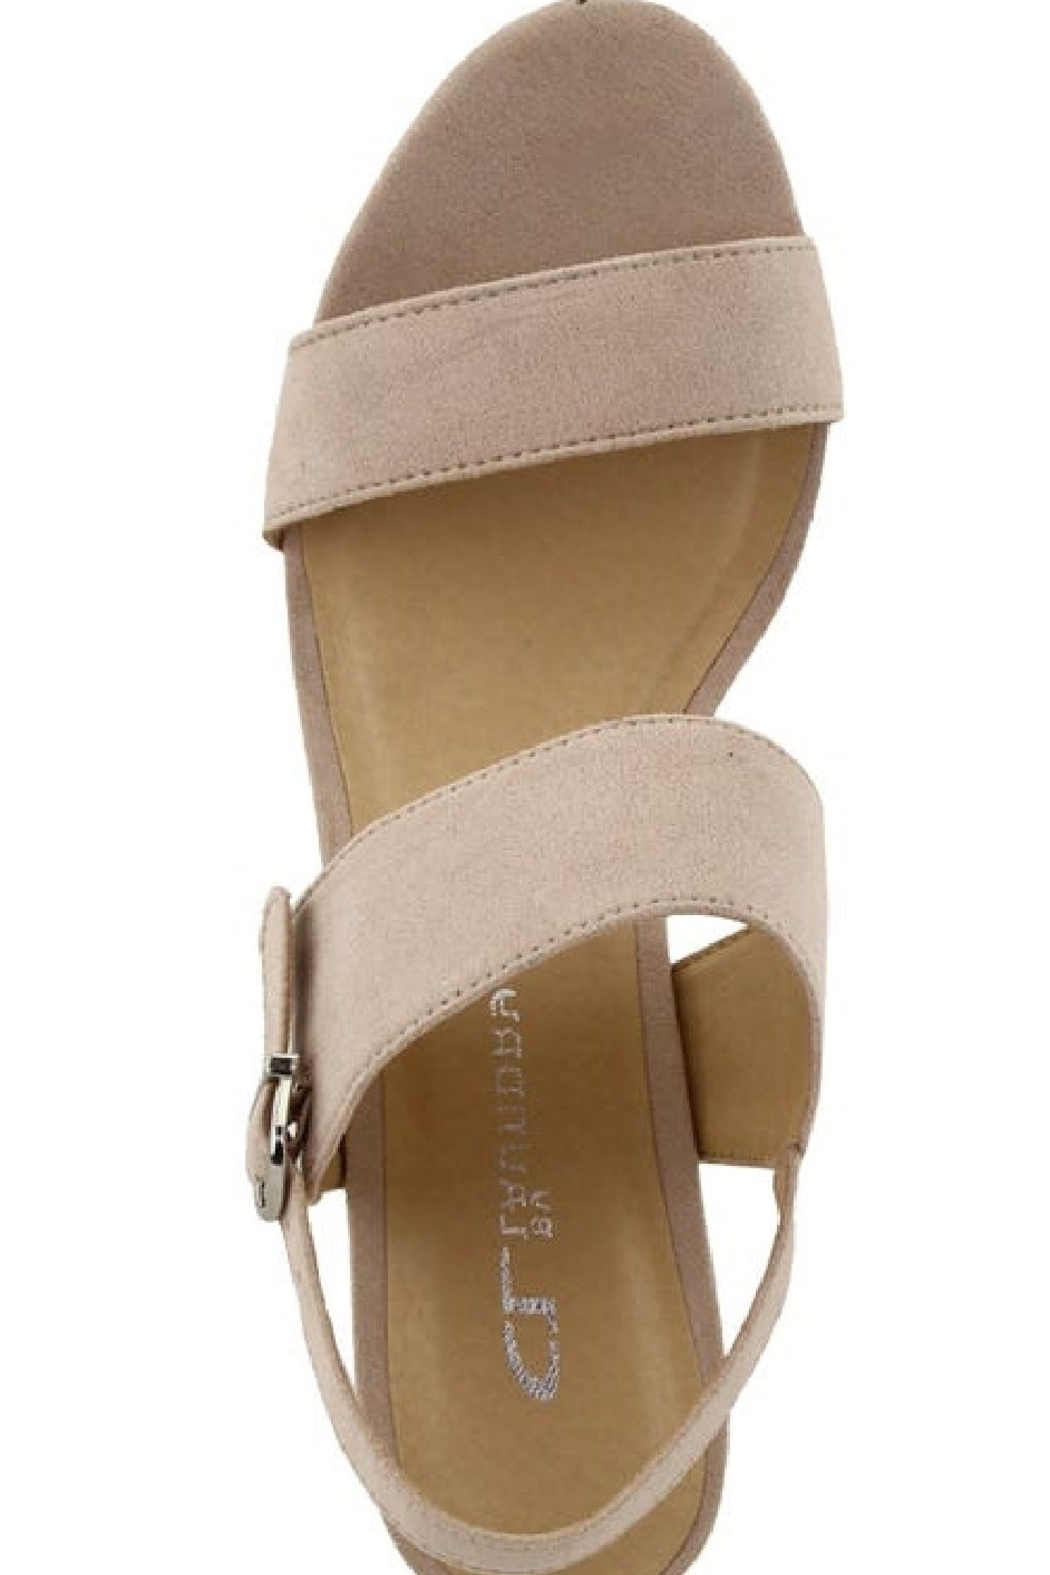 Chinese Laundry Spot On Nude Suede Heel - Main Image